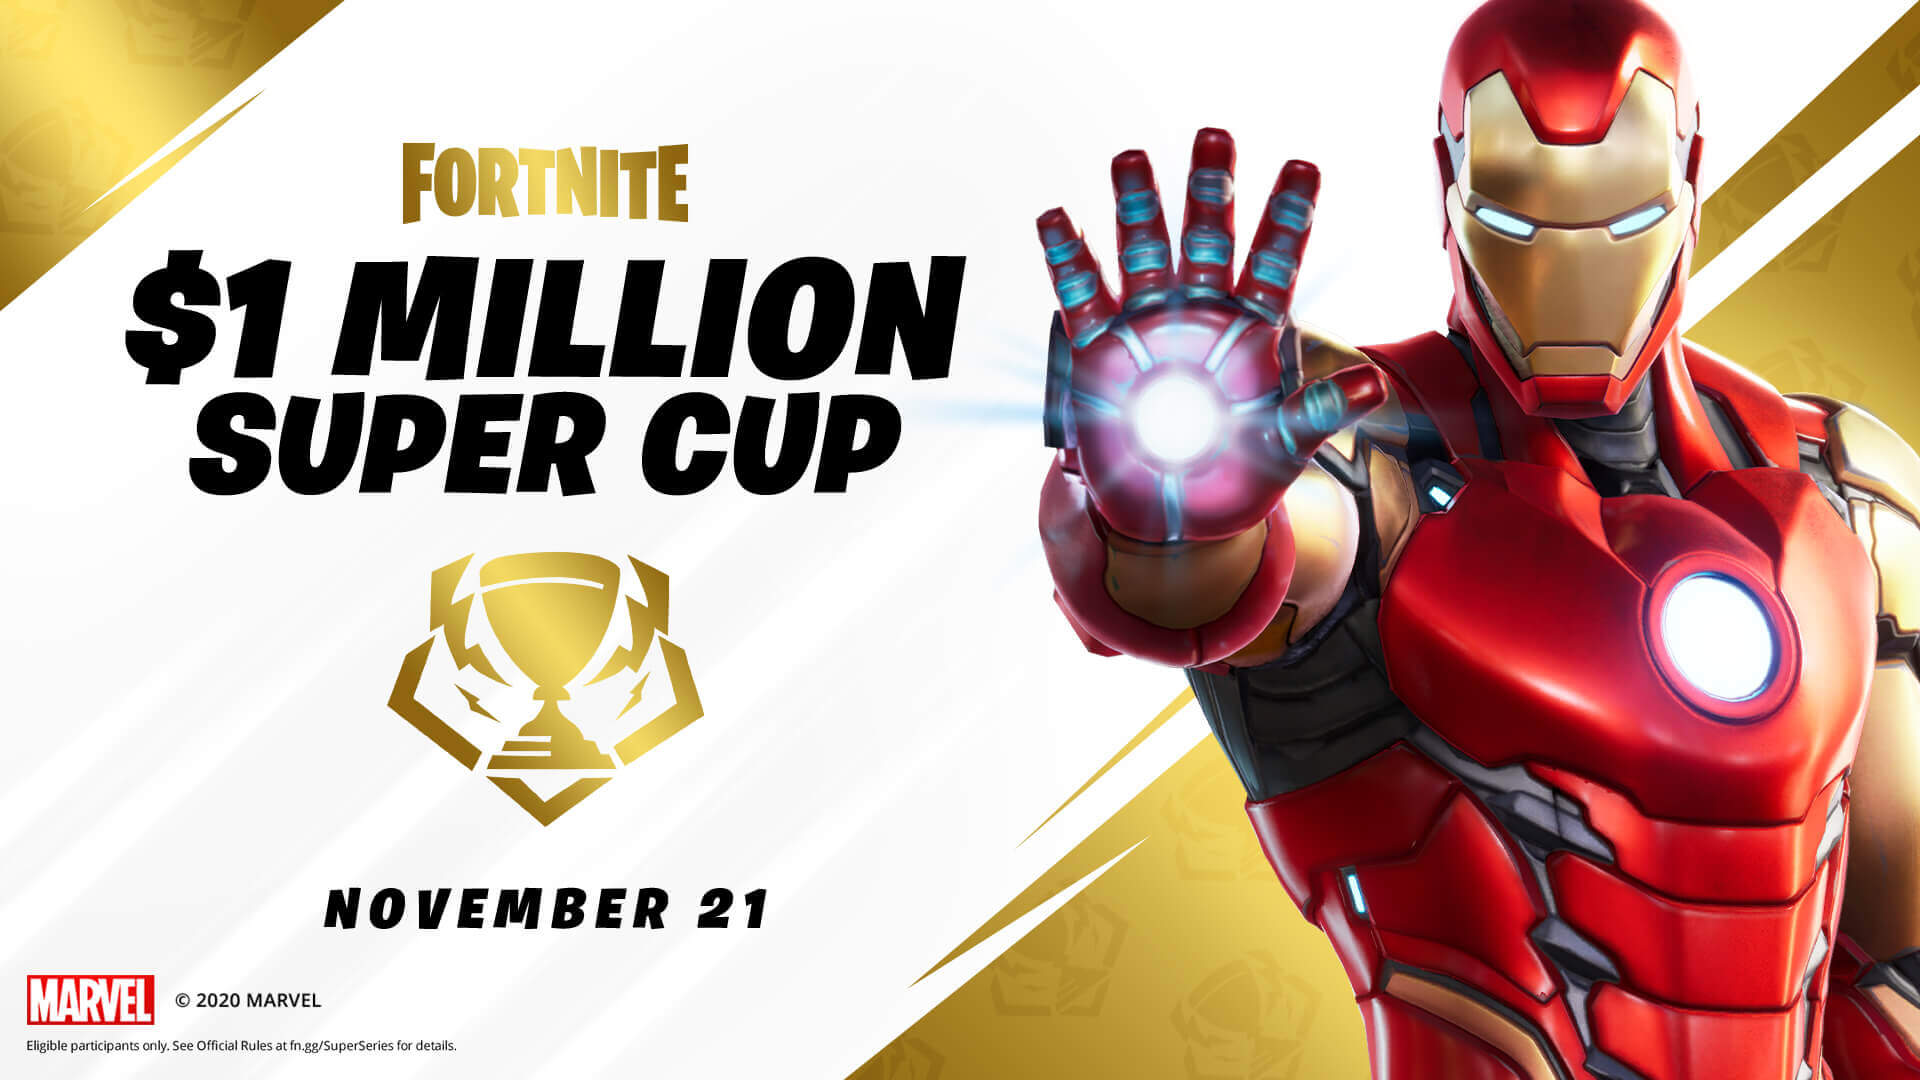 Venom Cup announced with improved chances to win + M Super Cup